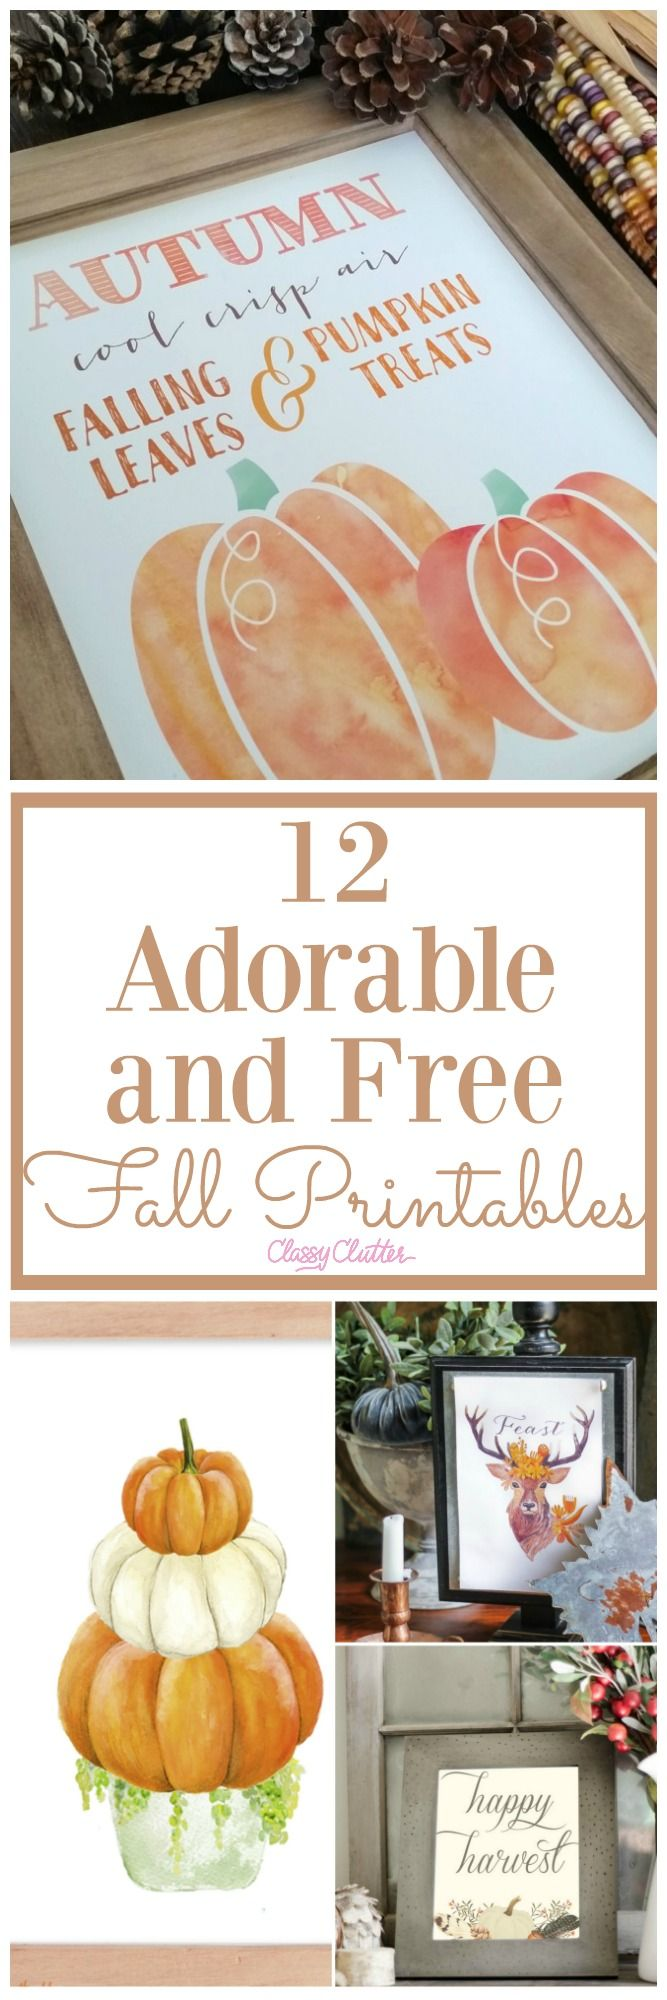 12 adorable and free fall printables that you will love!! Check them all out by clicking! classy Clutter